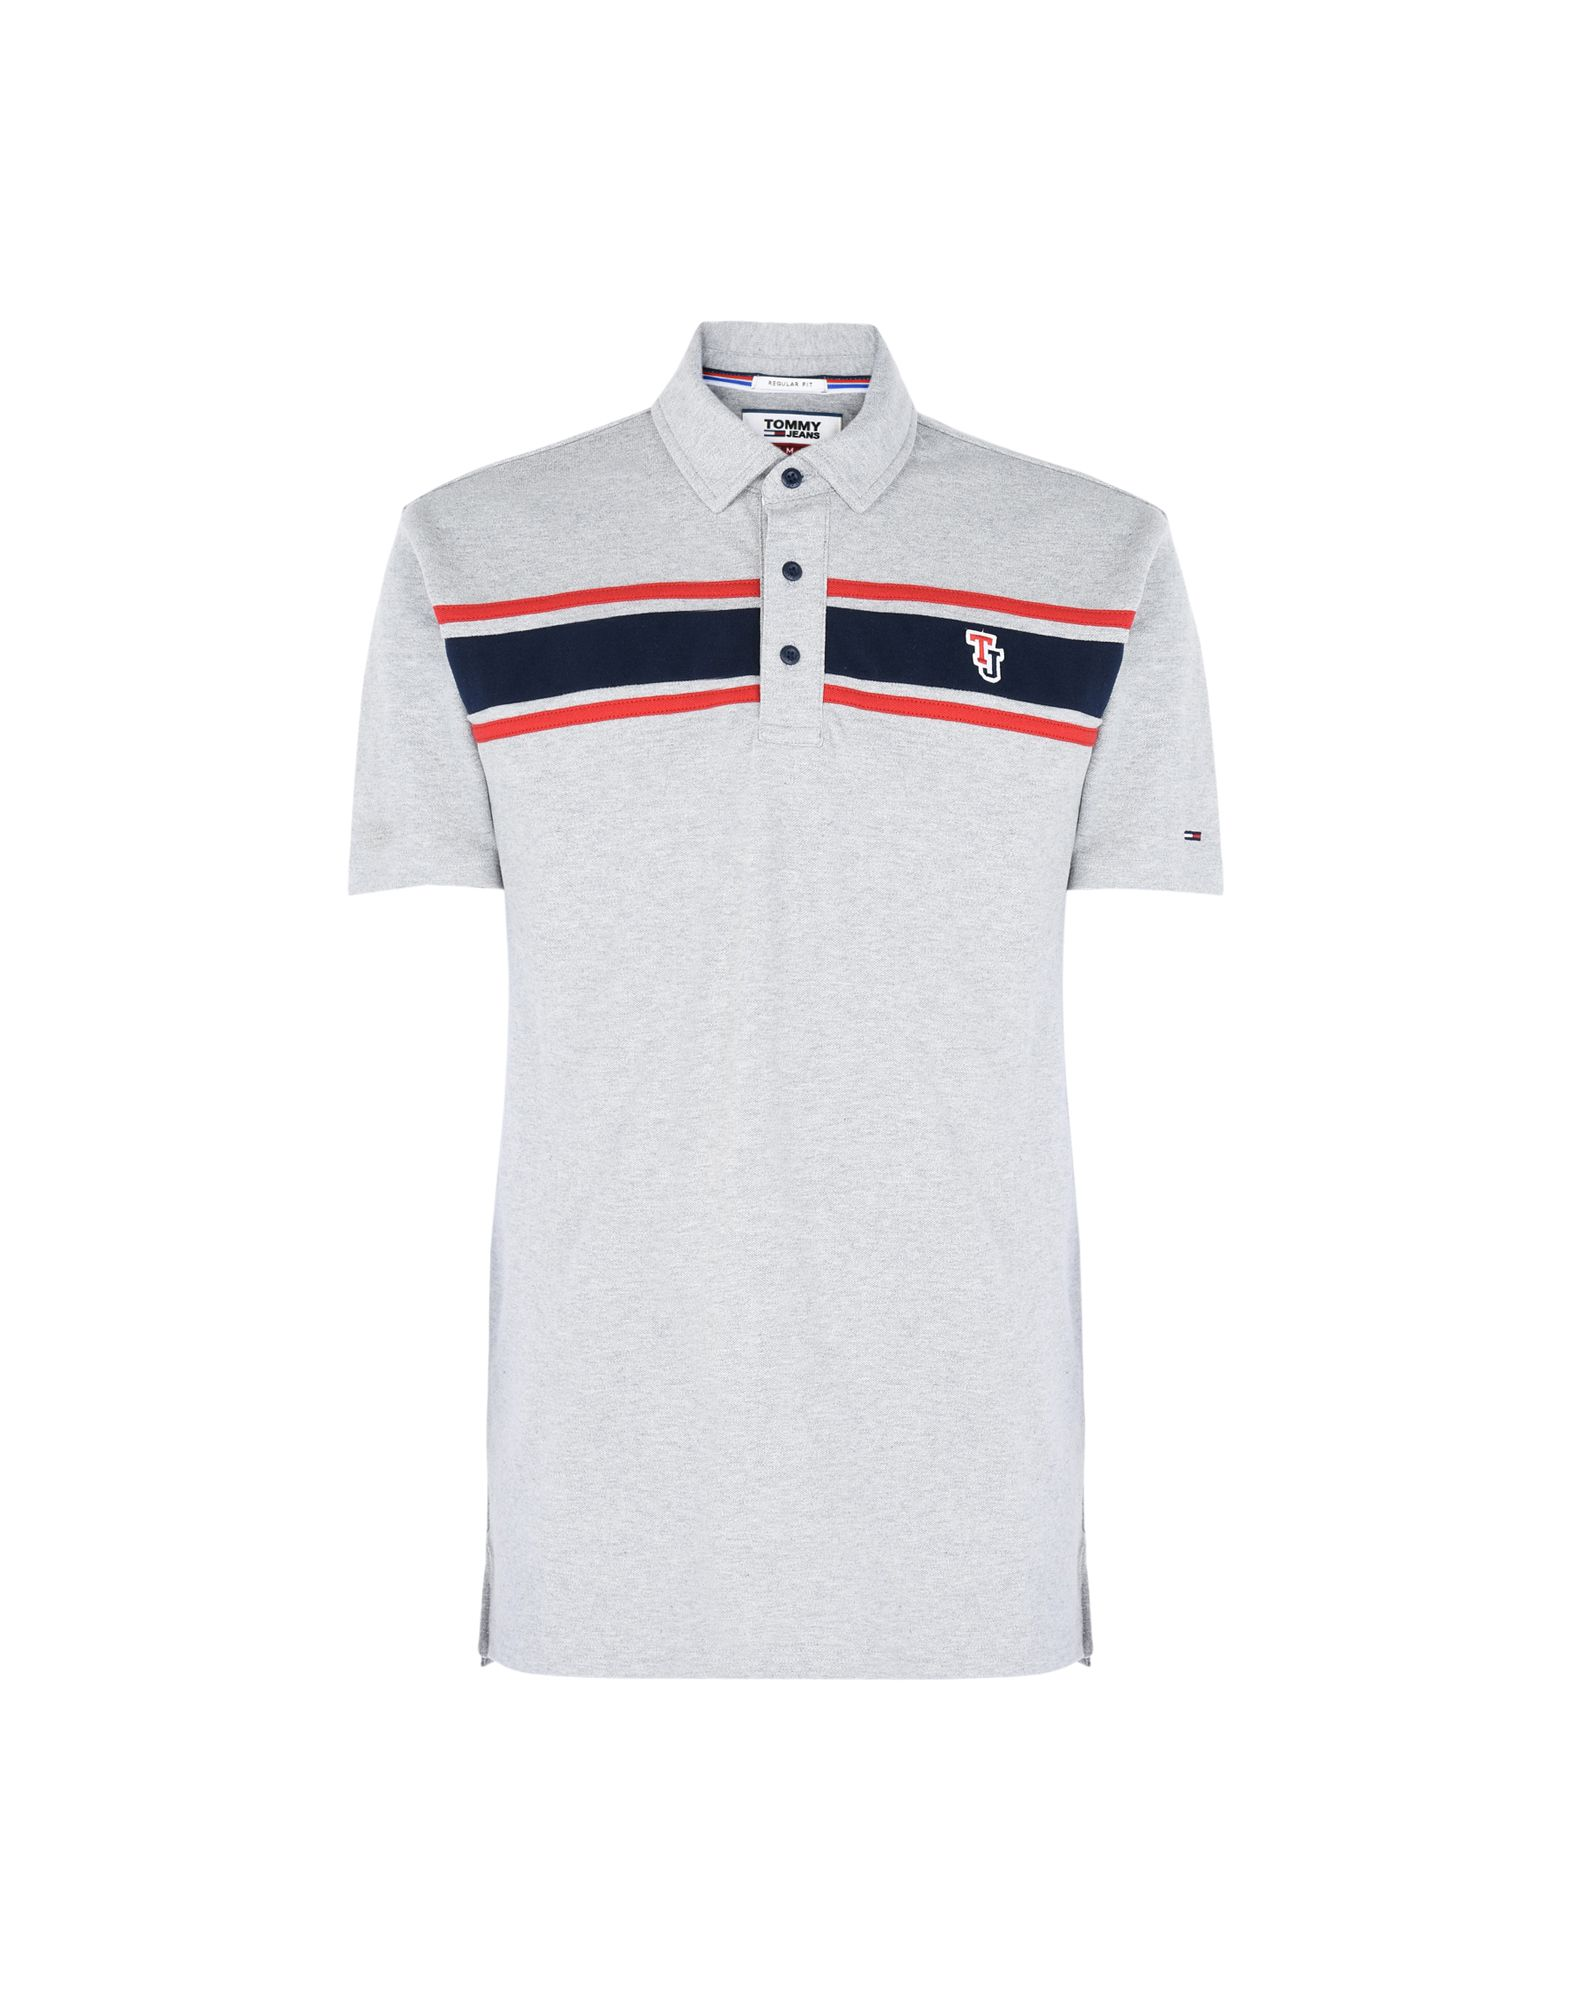 Mens TJM Retro Stripe Polo Shirt Tommy Jeans Extremely Discount Find Great Cheap Marketable rMVyG